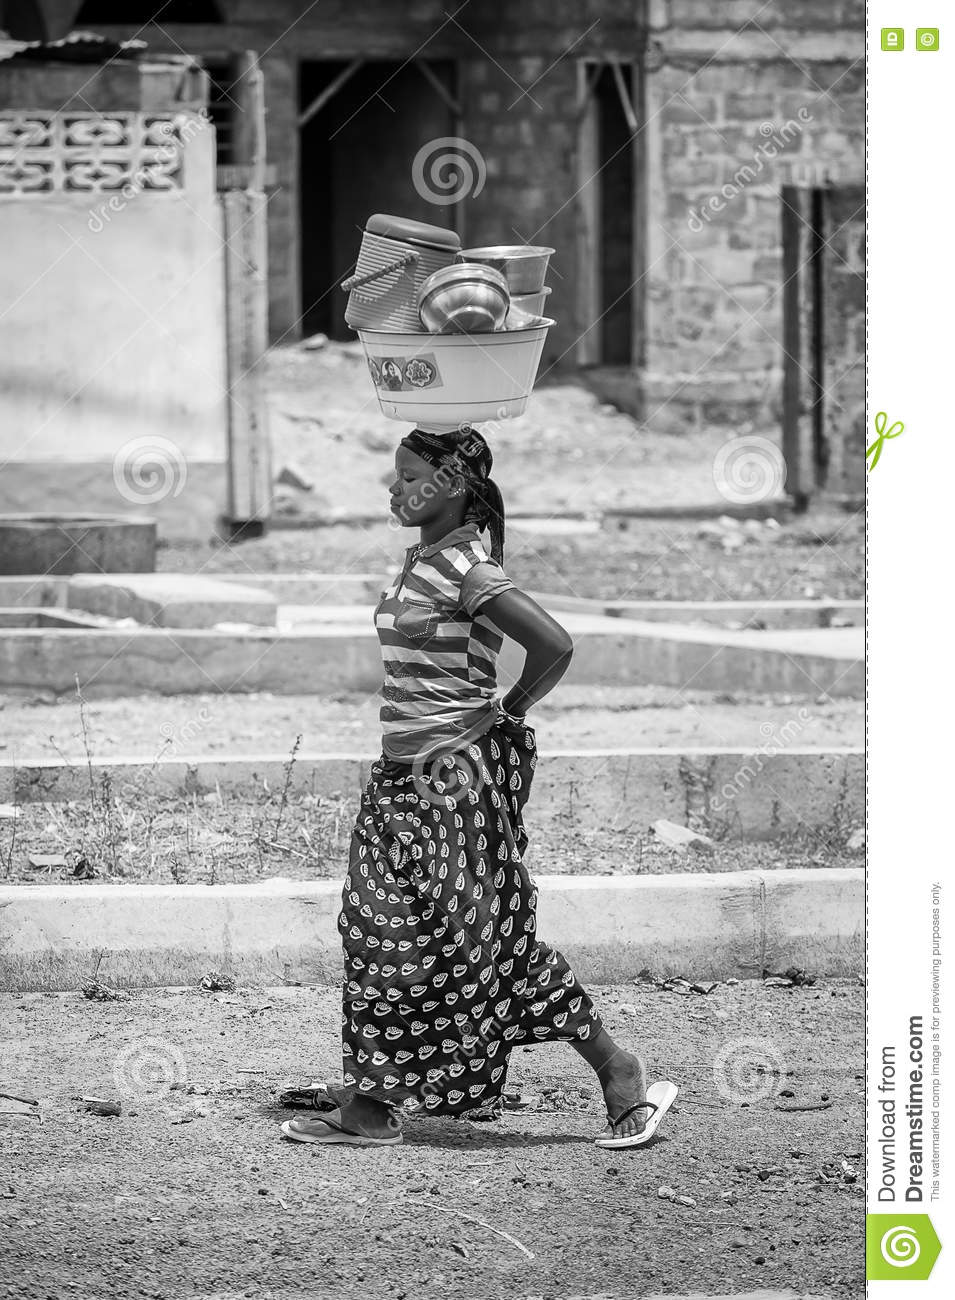 Real People In Togo, In Black And White Editorial Stock